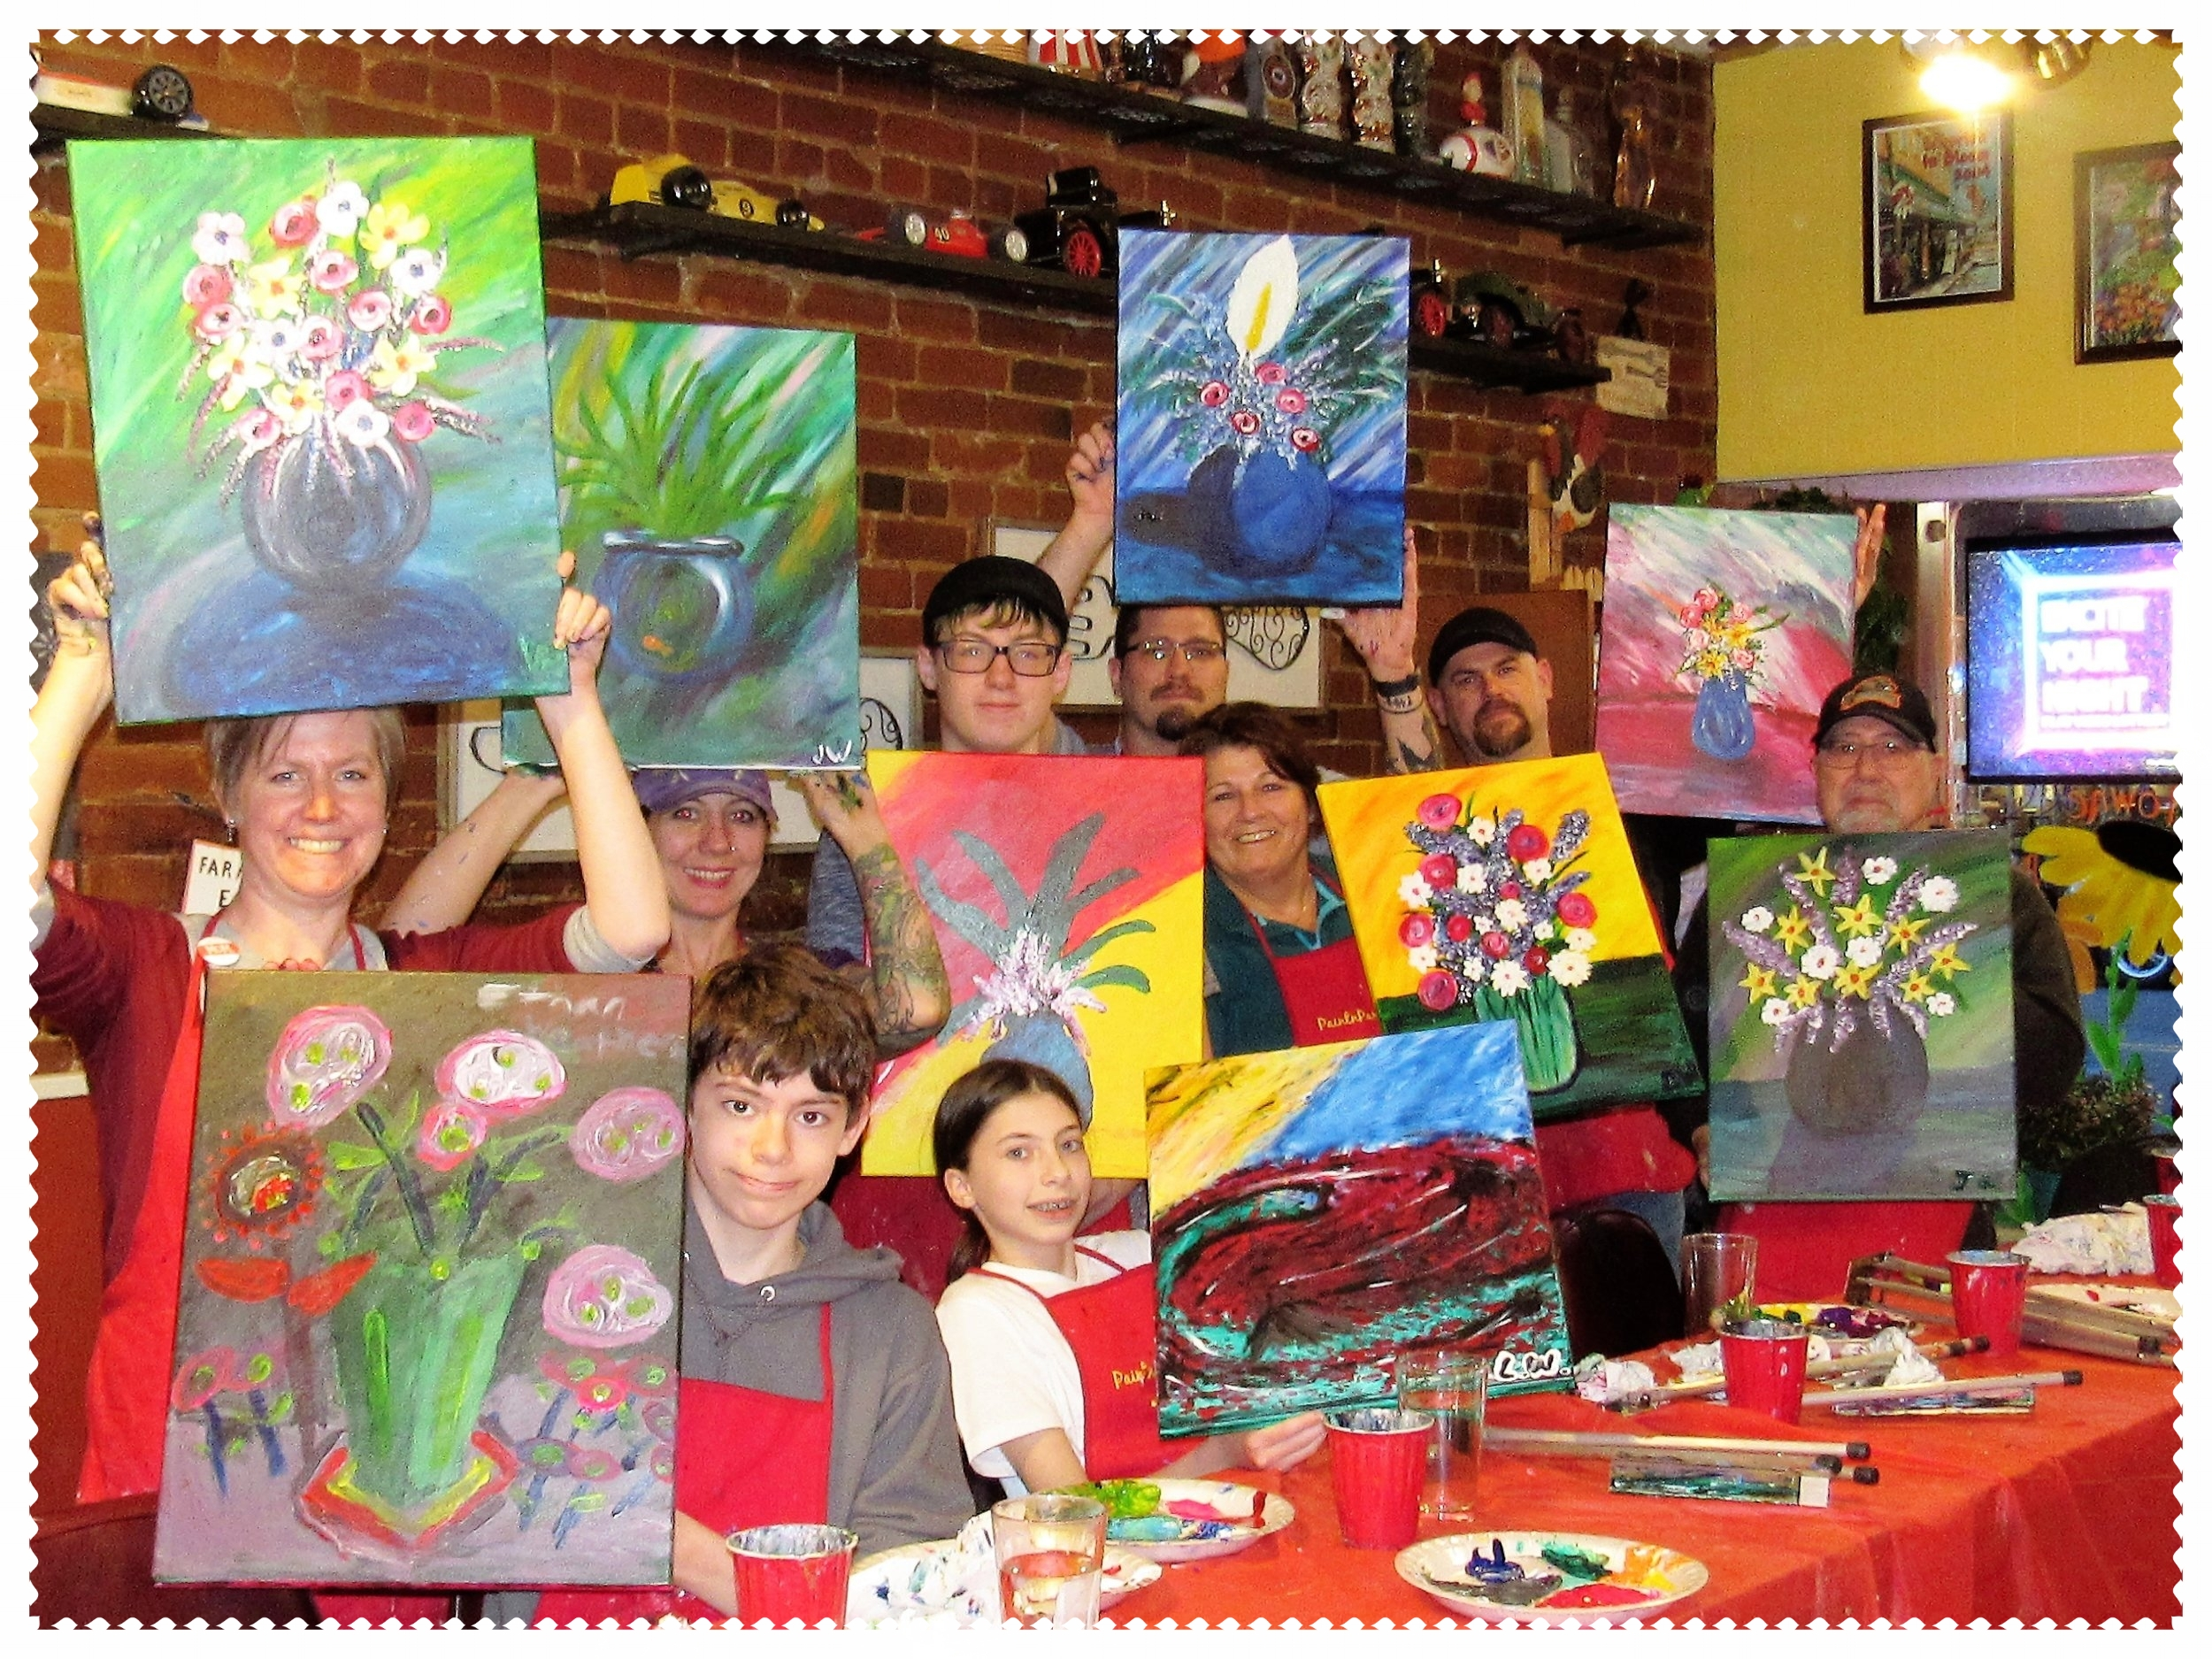 Towne House Cafe, Silverton - Family Night Finger Paint Boquets